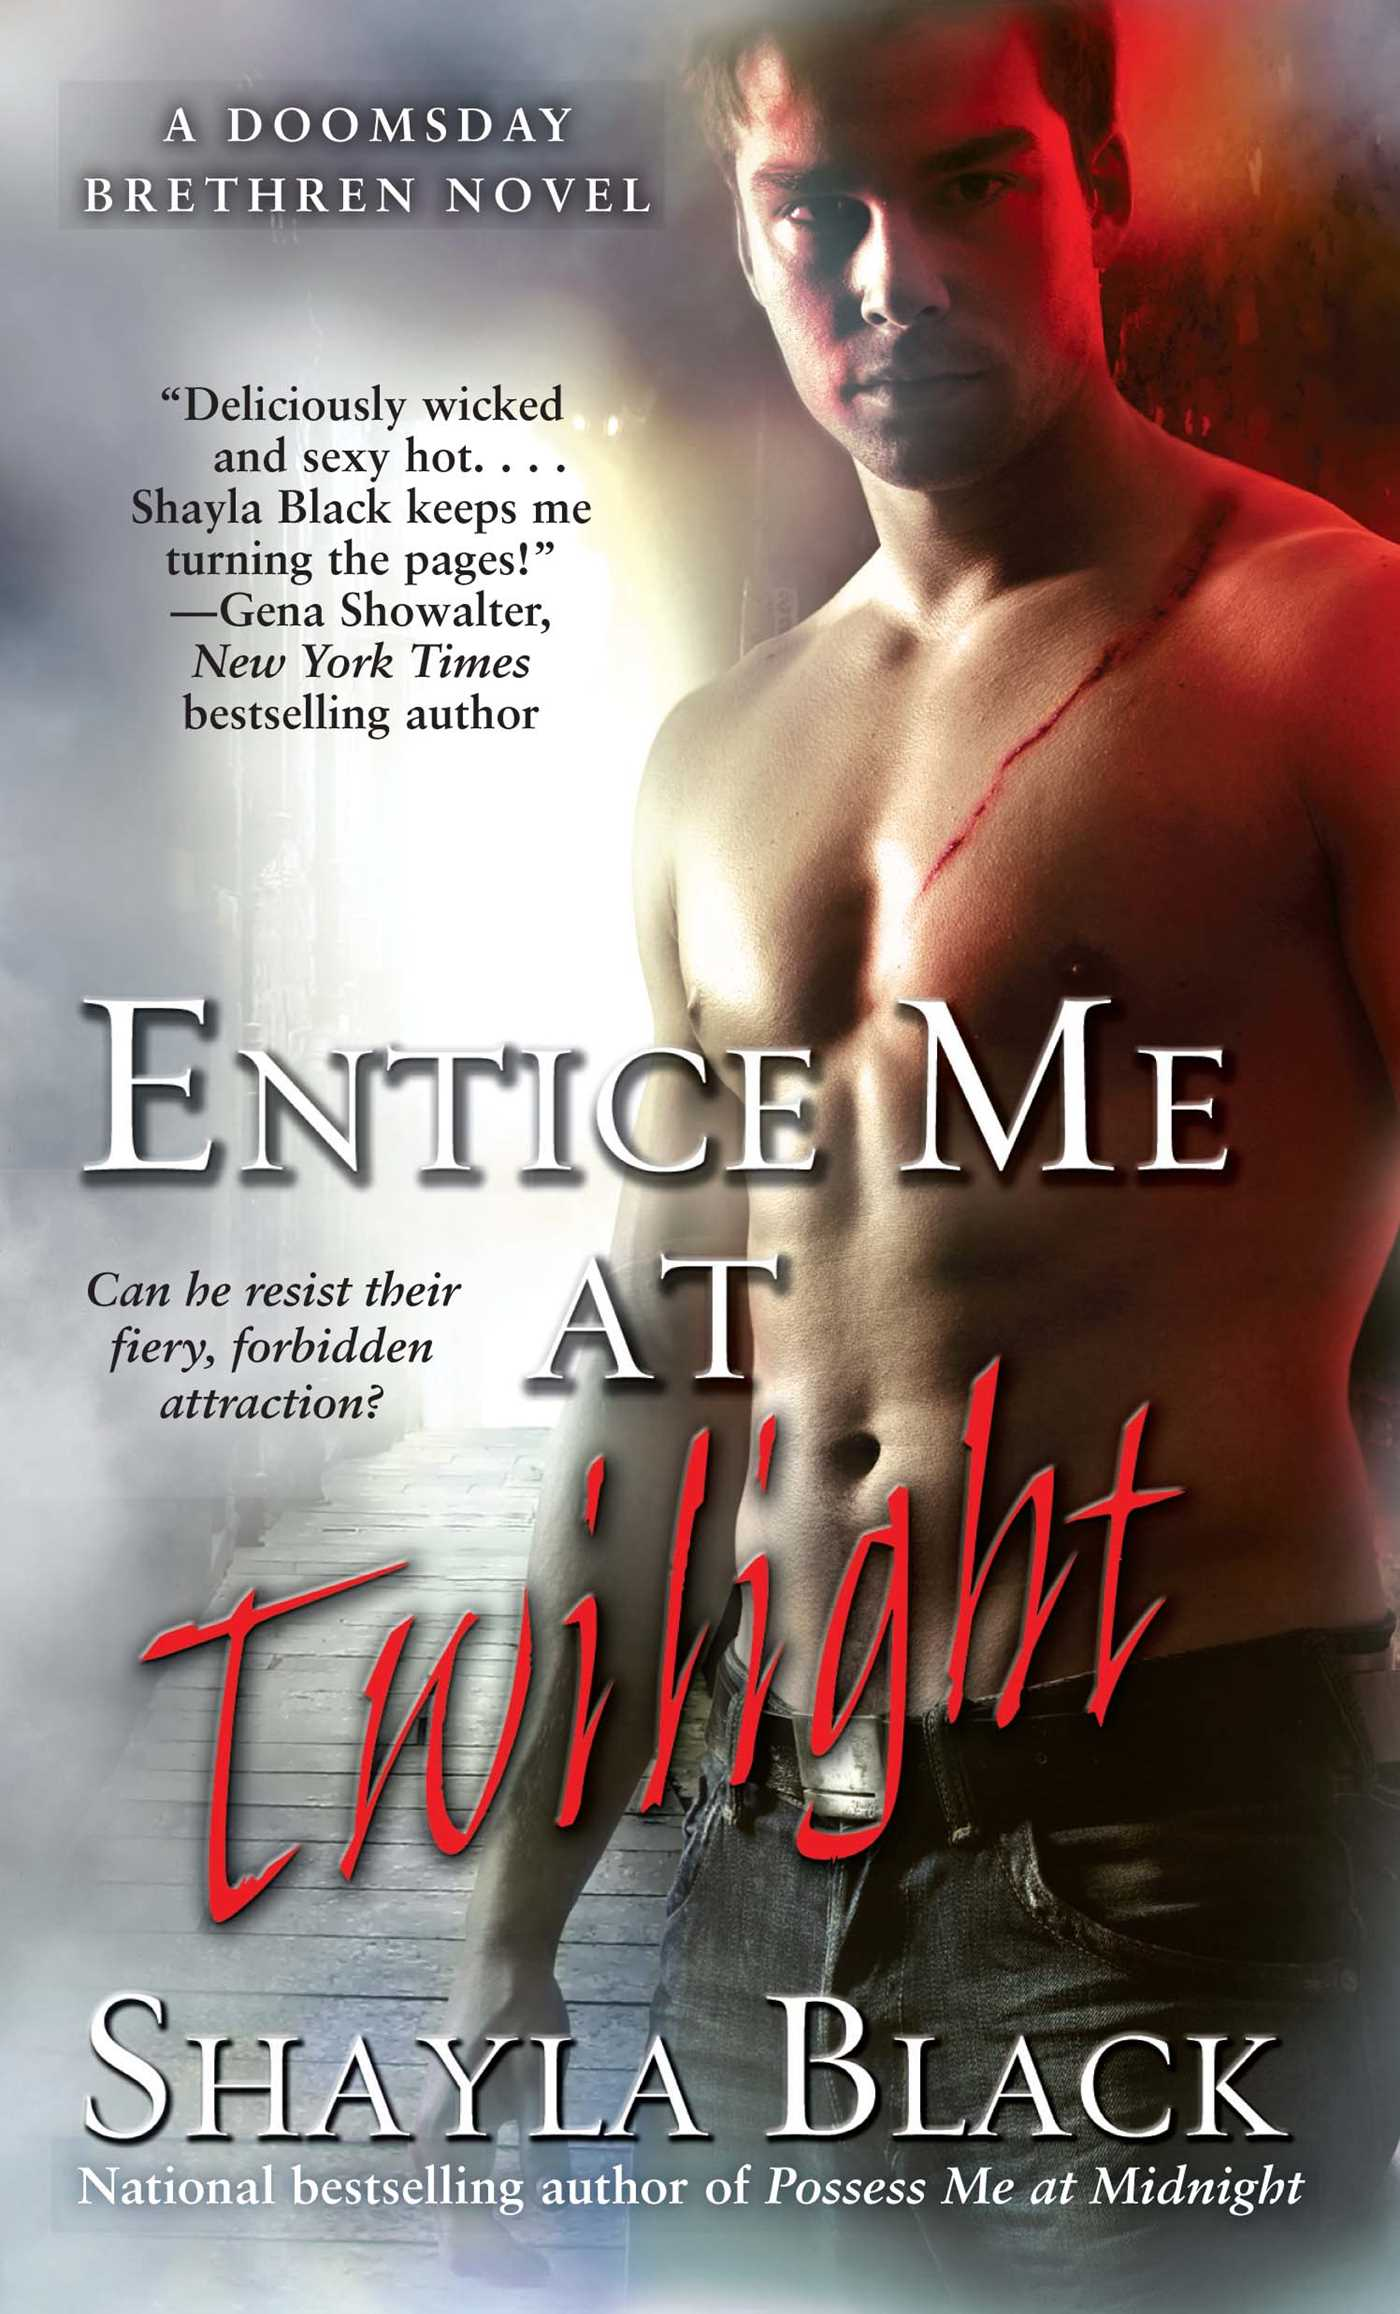 Entice-me-at-twilight-9781439166802_hr